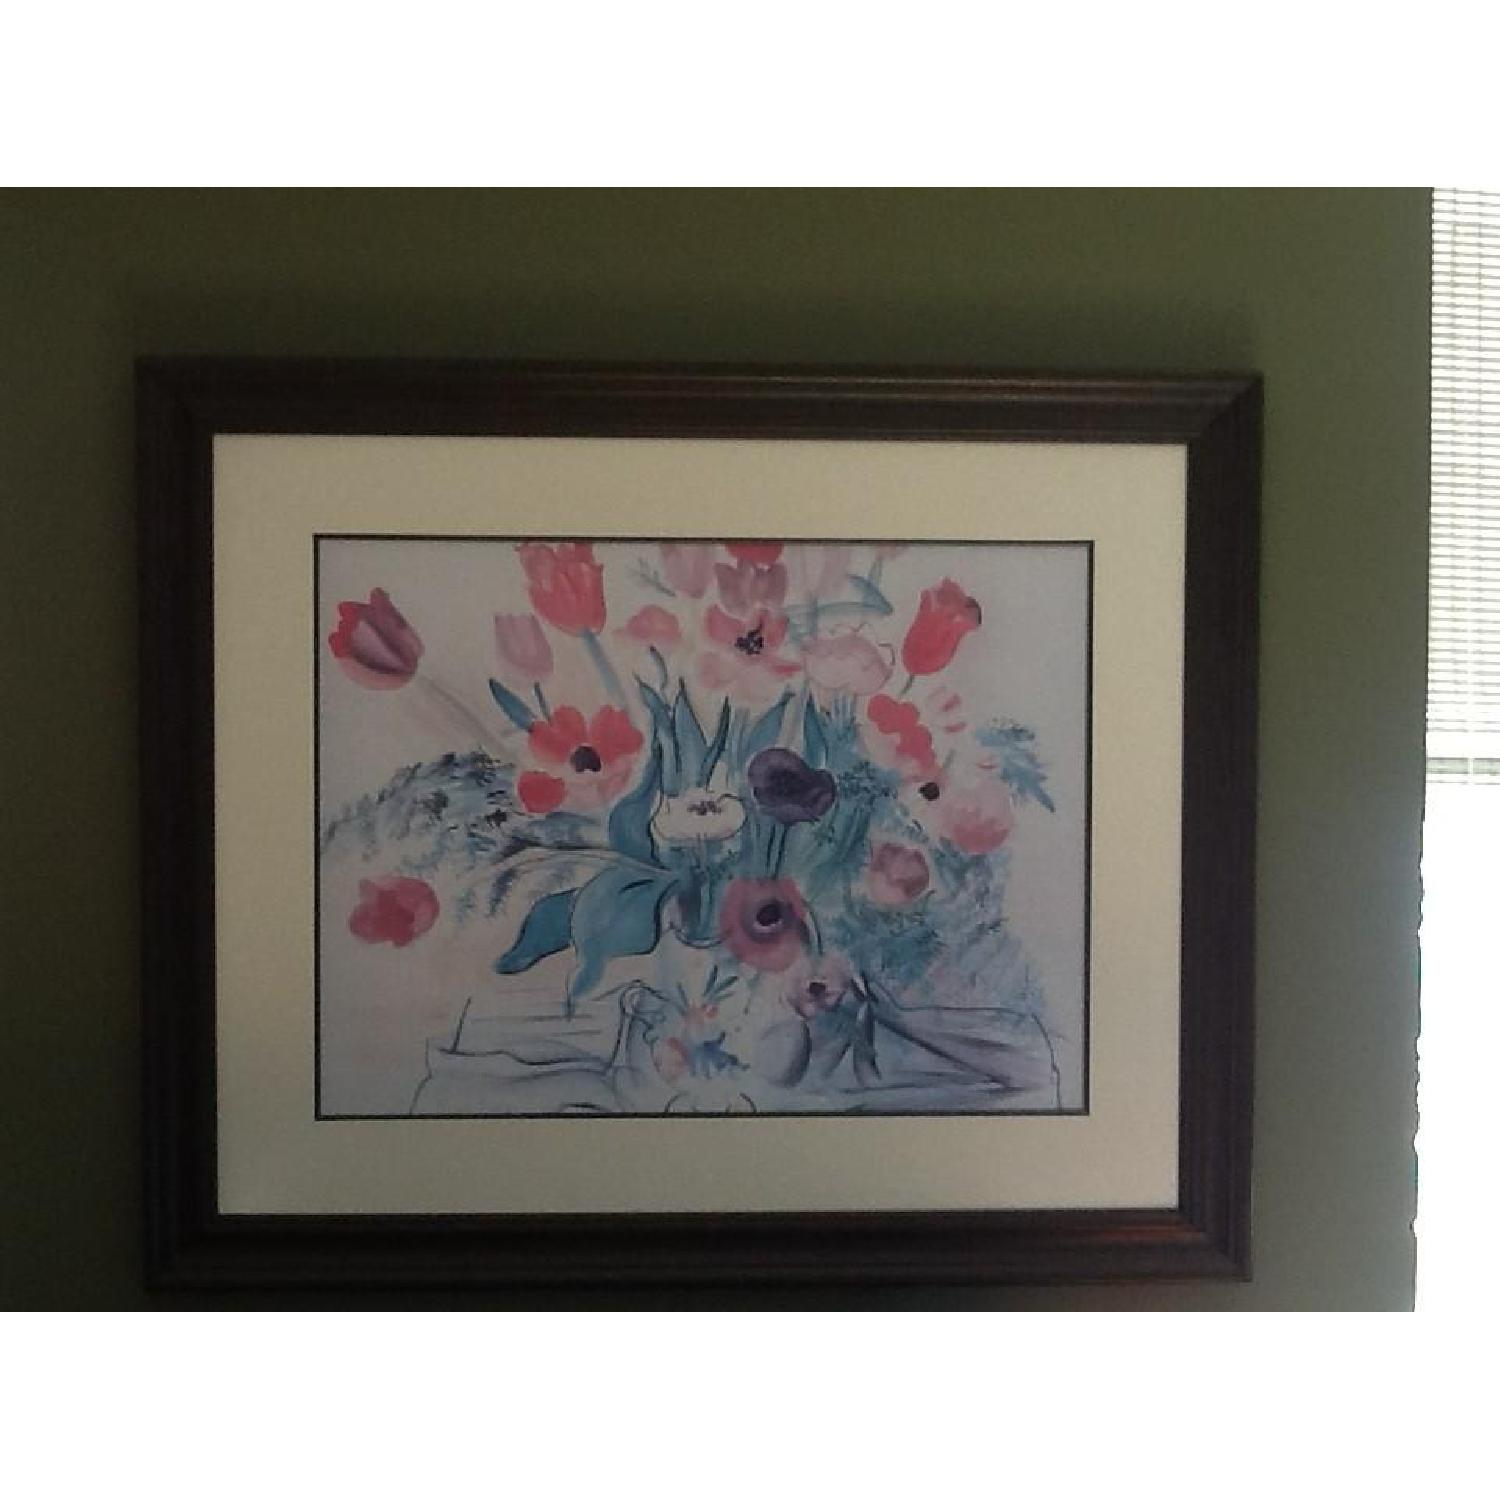 Framed & Matted Raoul Dufy Poster - Tulips & Peonies - image-1